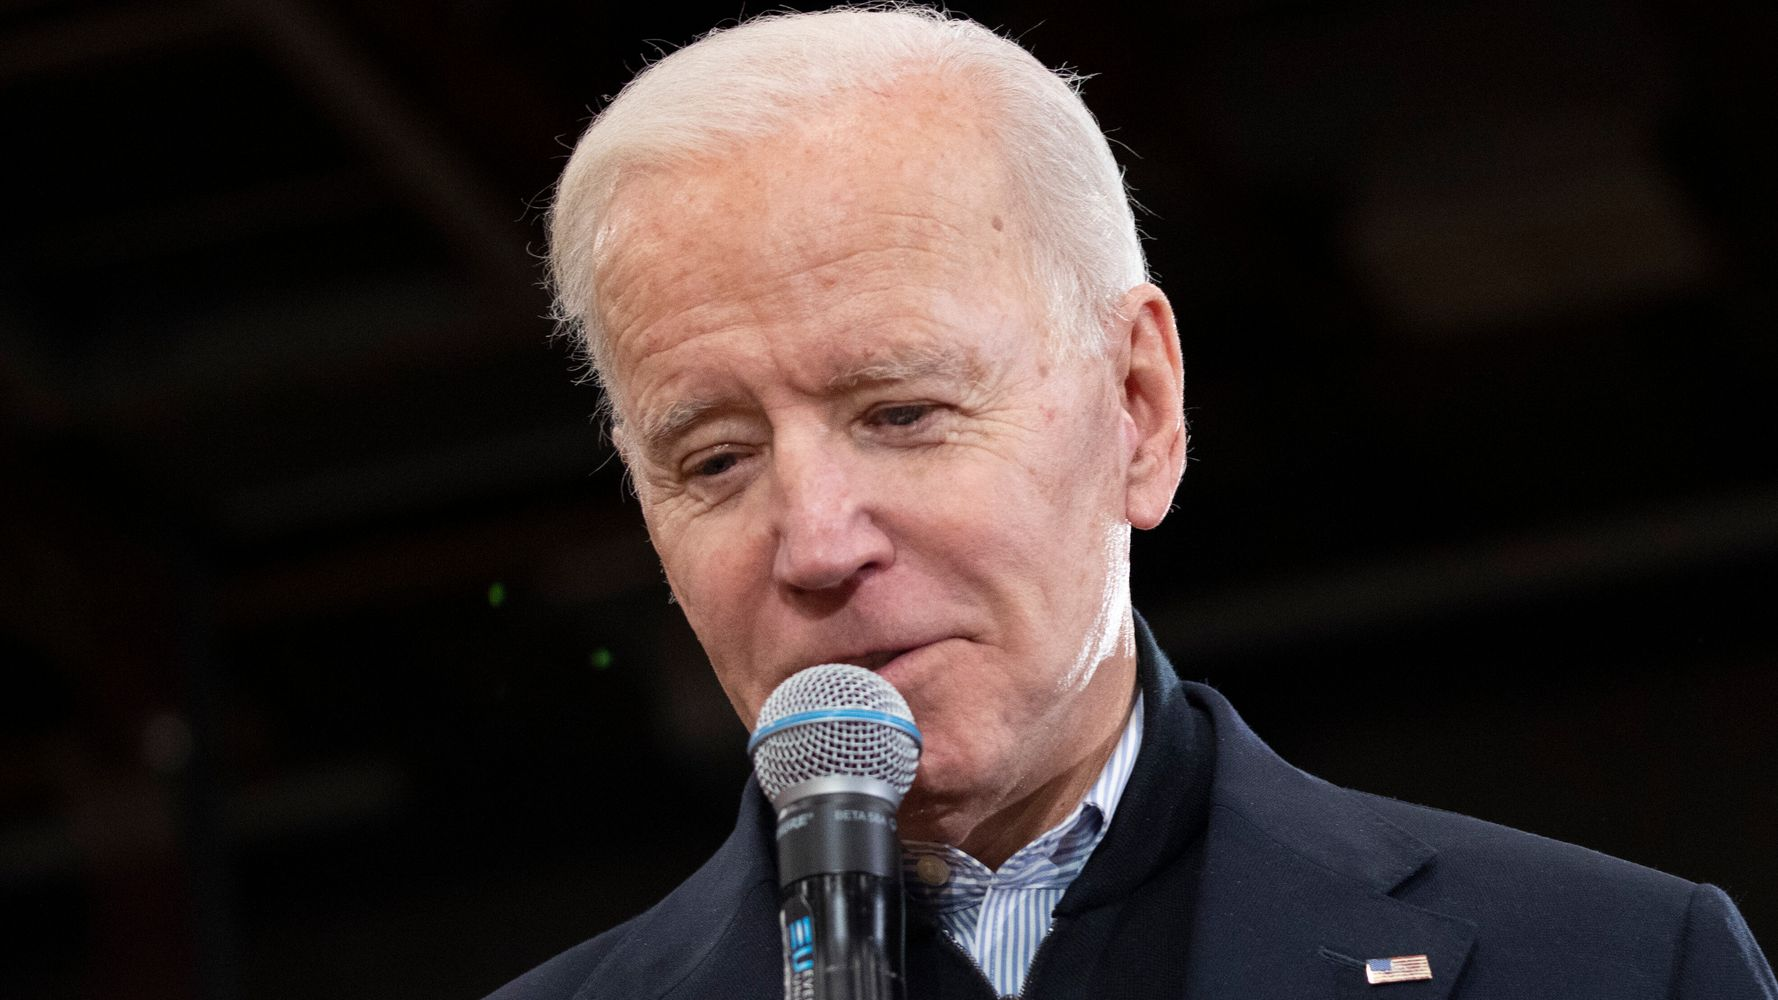 Westlake Legal Group 5e4369b4210000dc0032b37a Joe Biden Declares 'It Ain't Over, Man' After Weak New Hampshire Showing